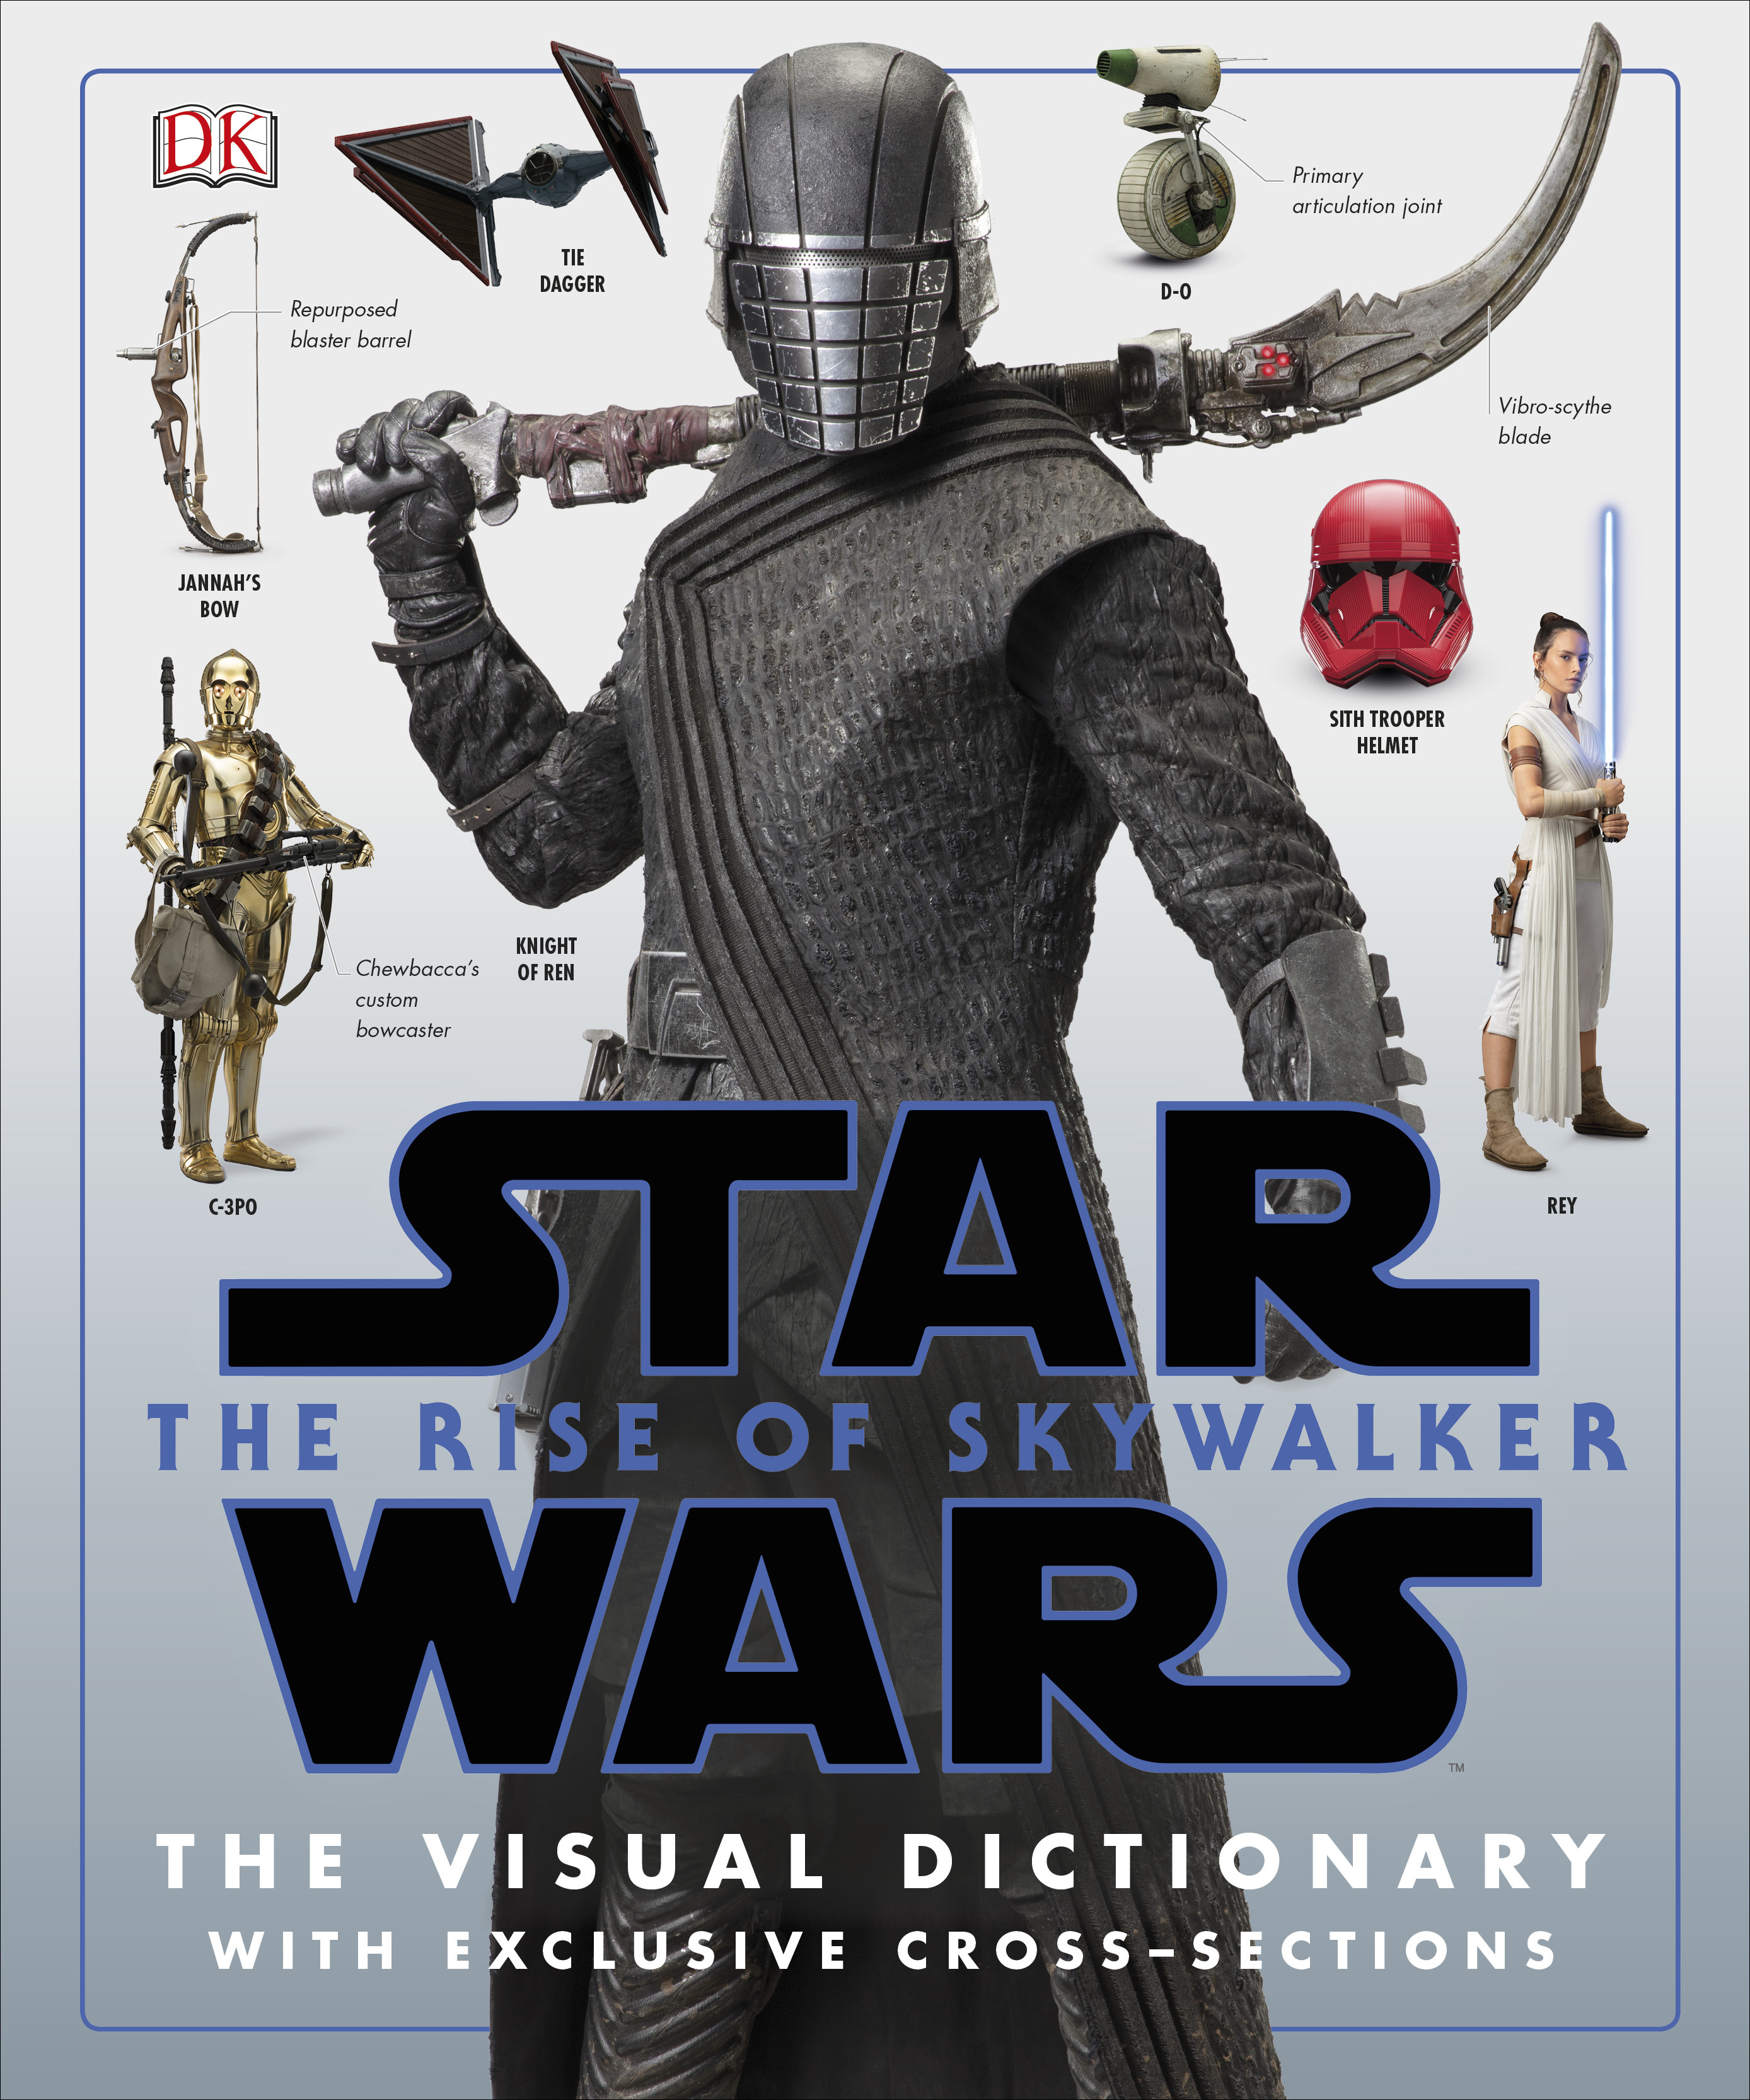 The Rise of Skywalker: The Visual Dictionary